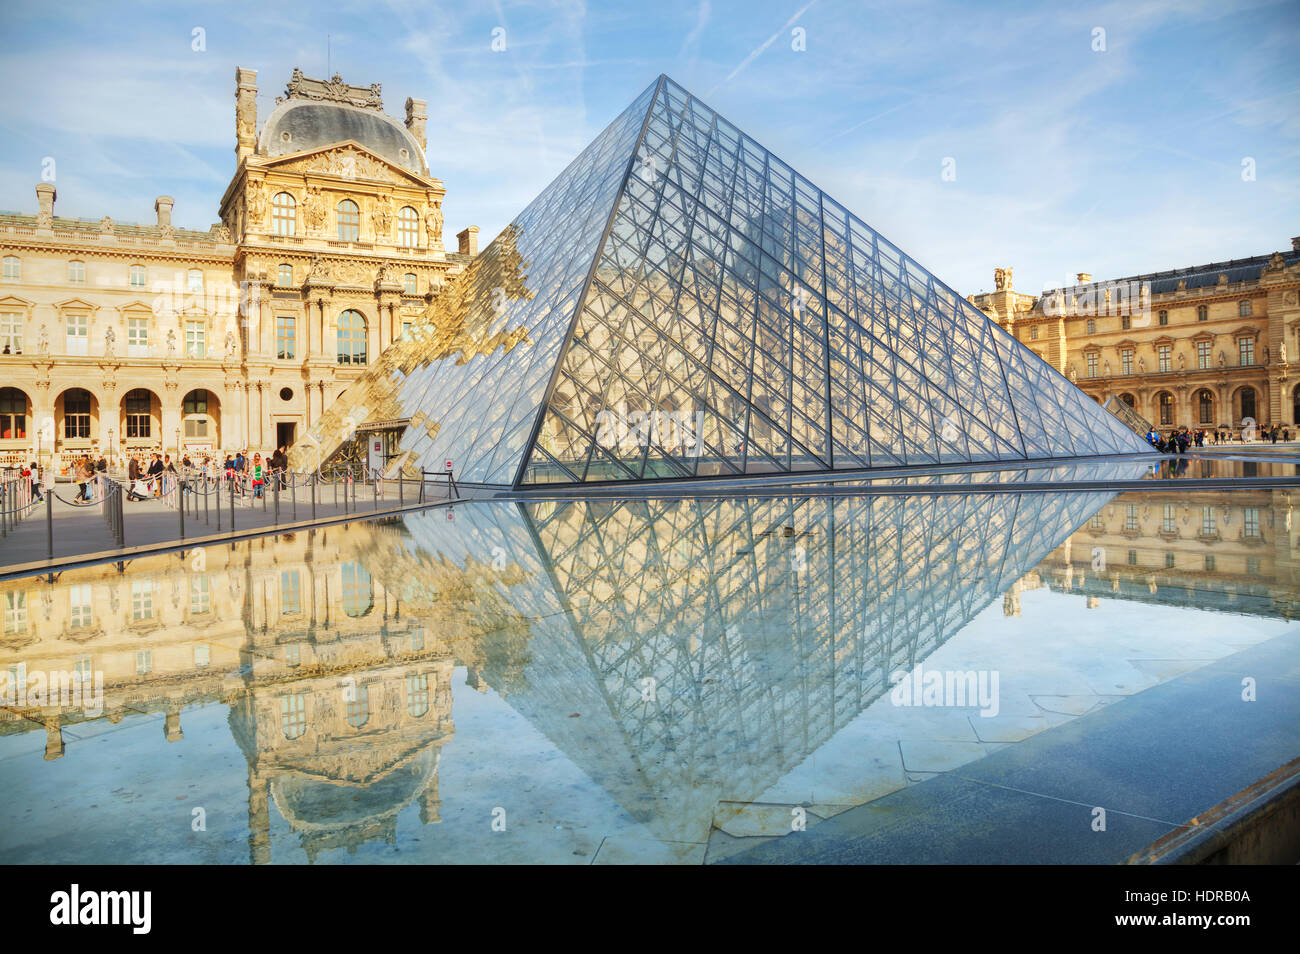 PARIS - NOVEMBER 1: The Louvre Pyramid on November 1, 2014 in Paris, France. It serves as the main entrance to the - Stock Image